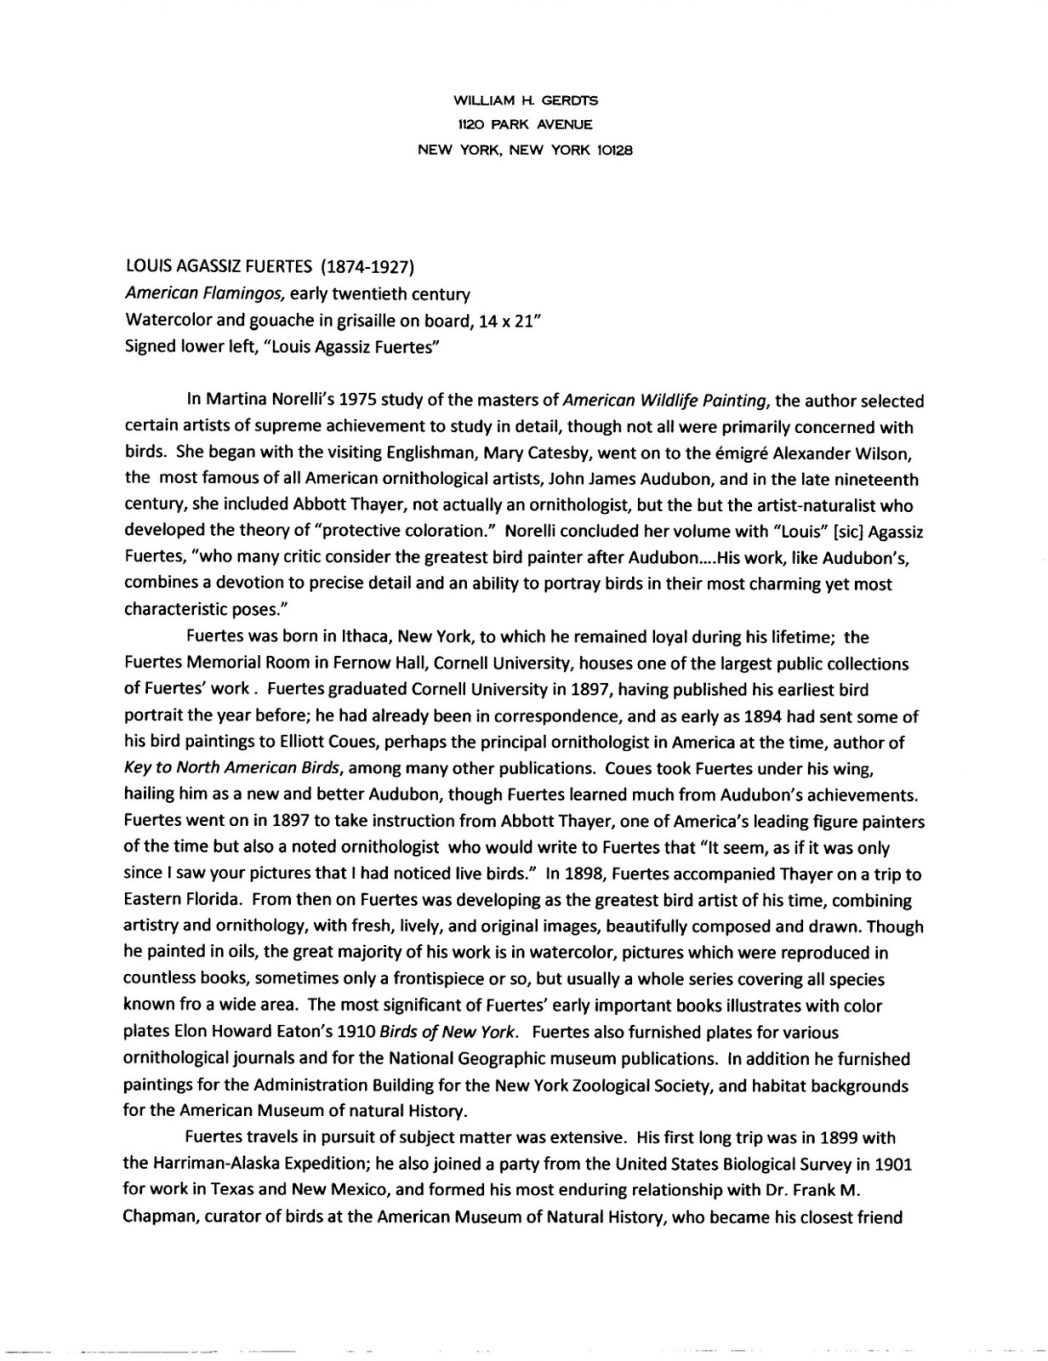 018 Leadership Essays Essay Example Personal Mba Statement For College Fuertesamericanflaming Examples Of Striking Samples Pdf Full